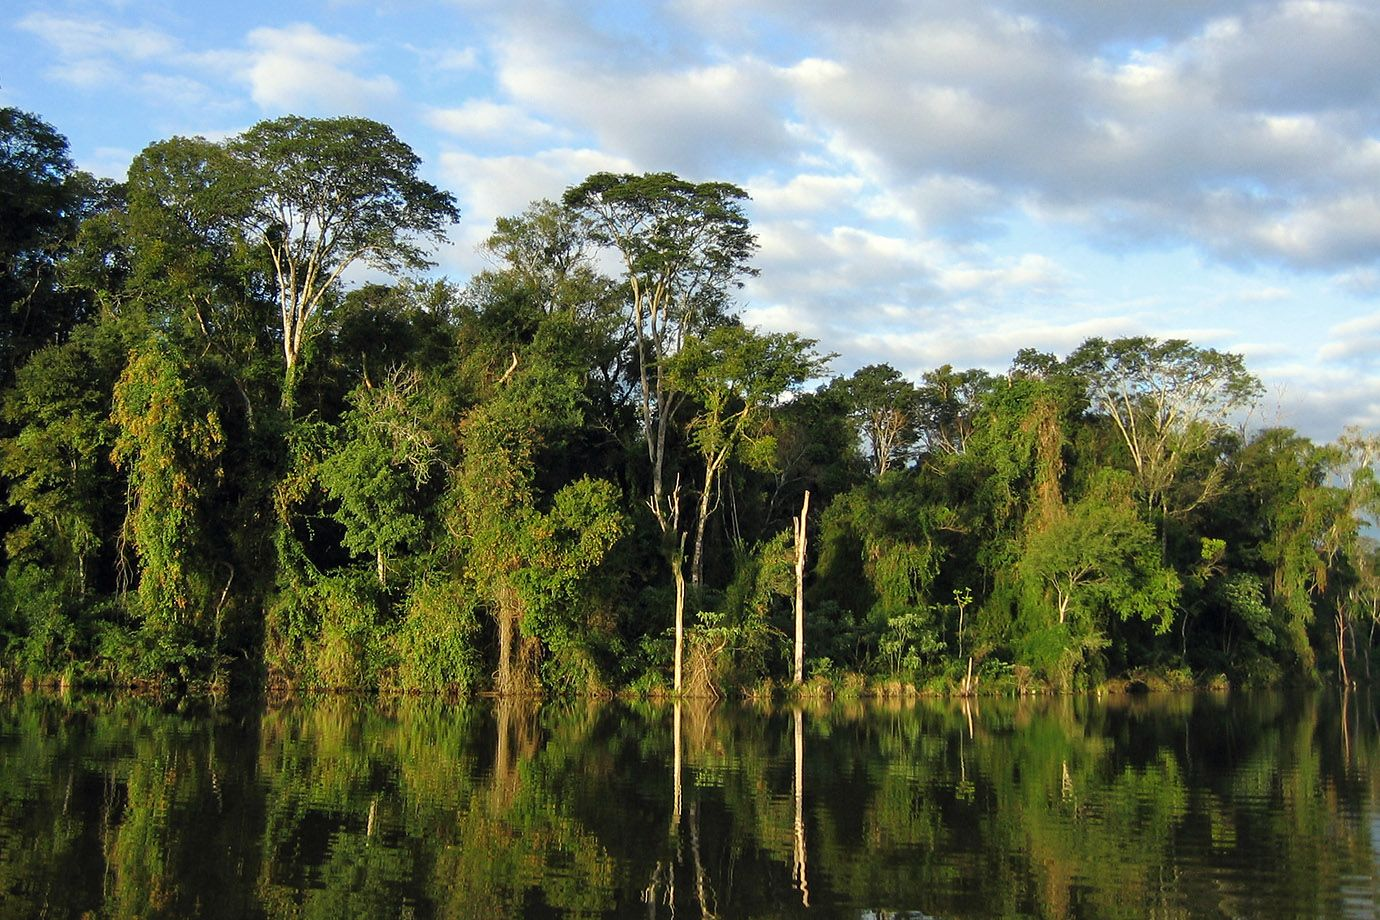 Forest in Paraguay